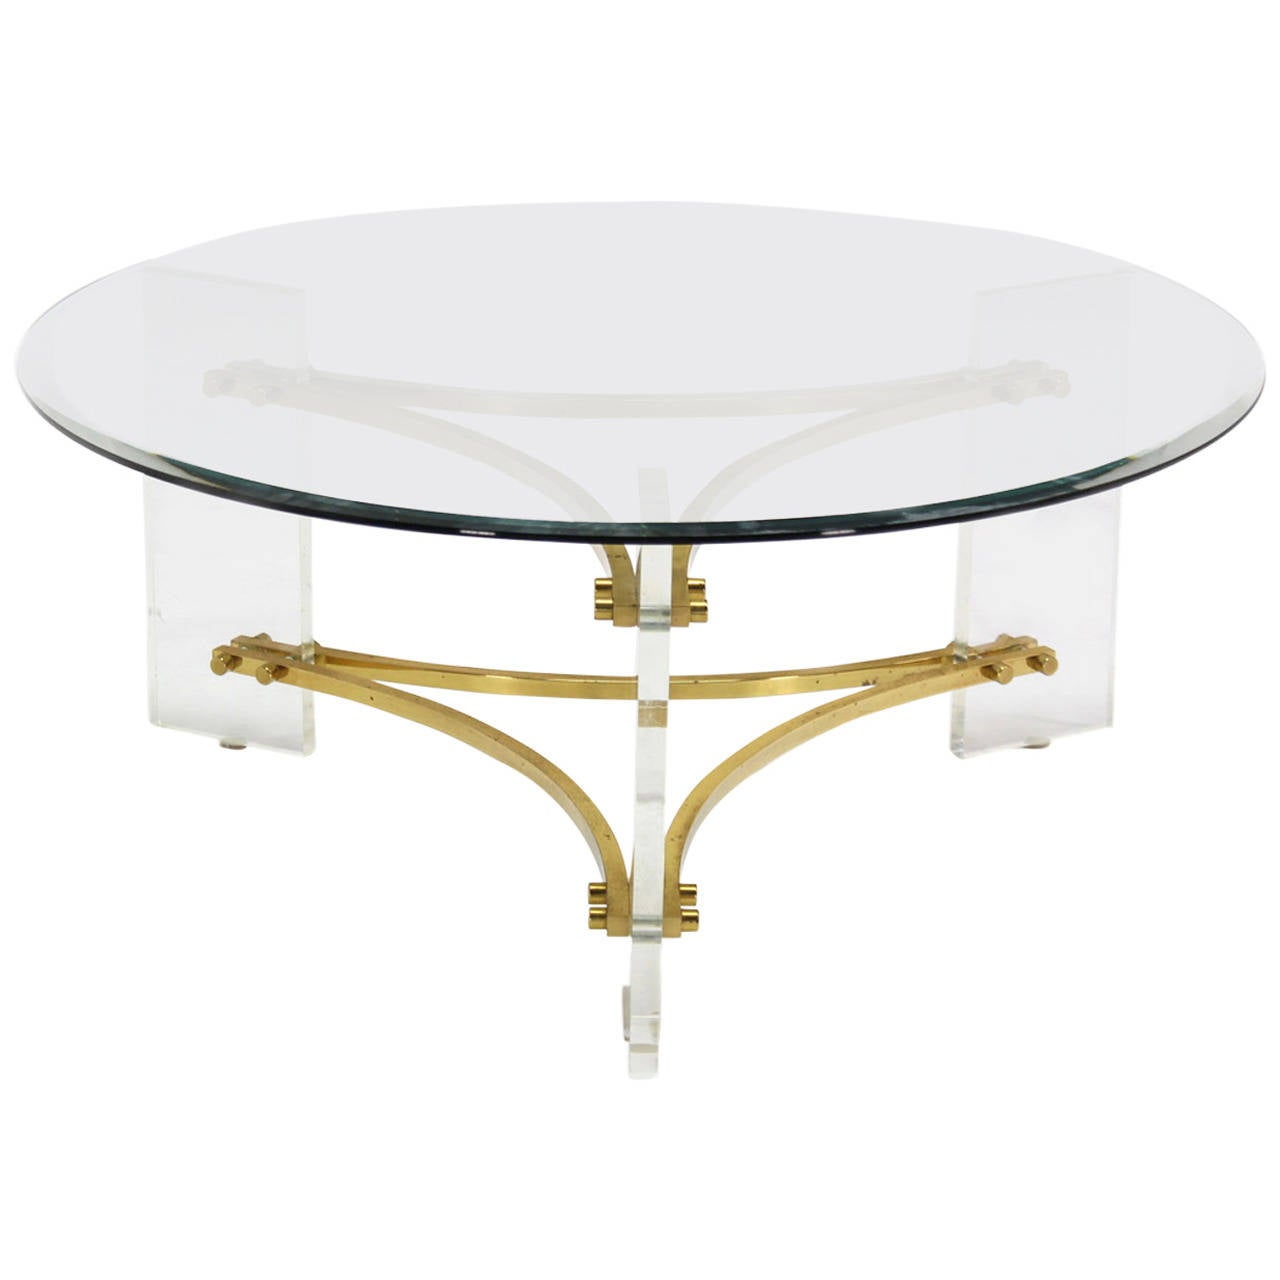 Charles hollis jones glass brass and lucite round coffee table at 1stdibs Brass round coffee table